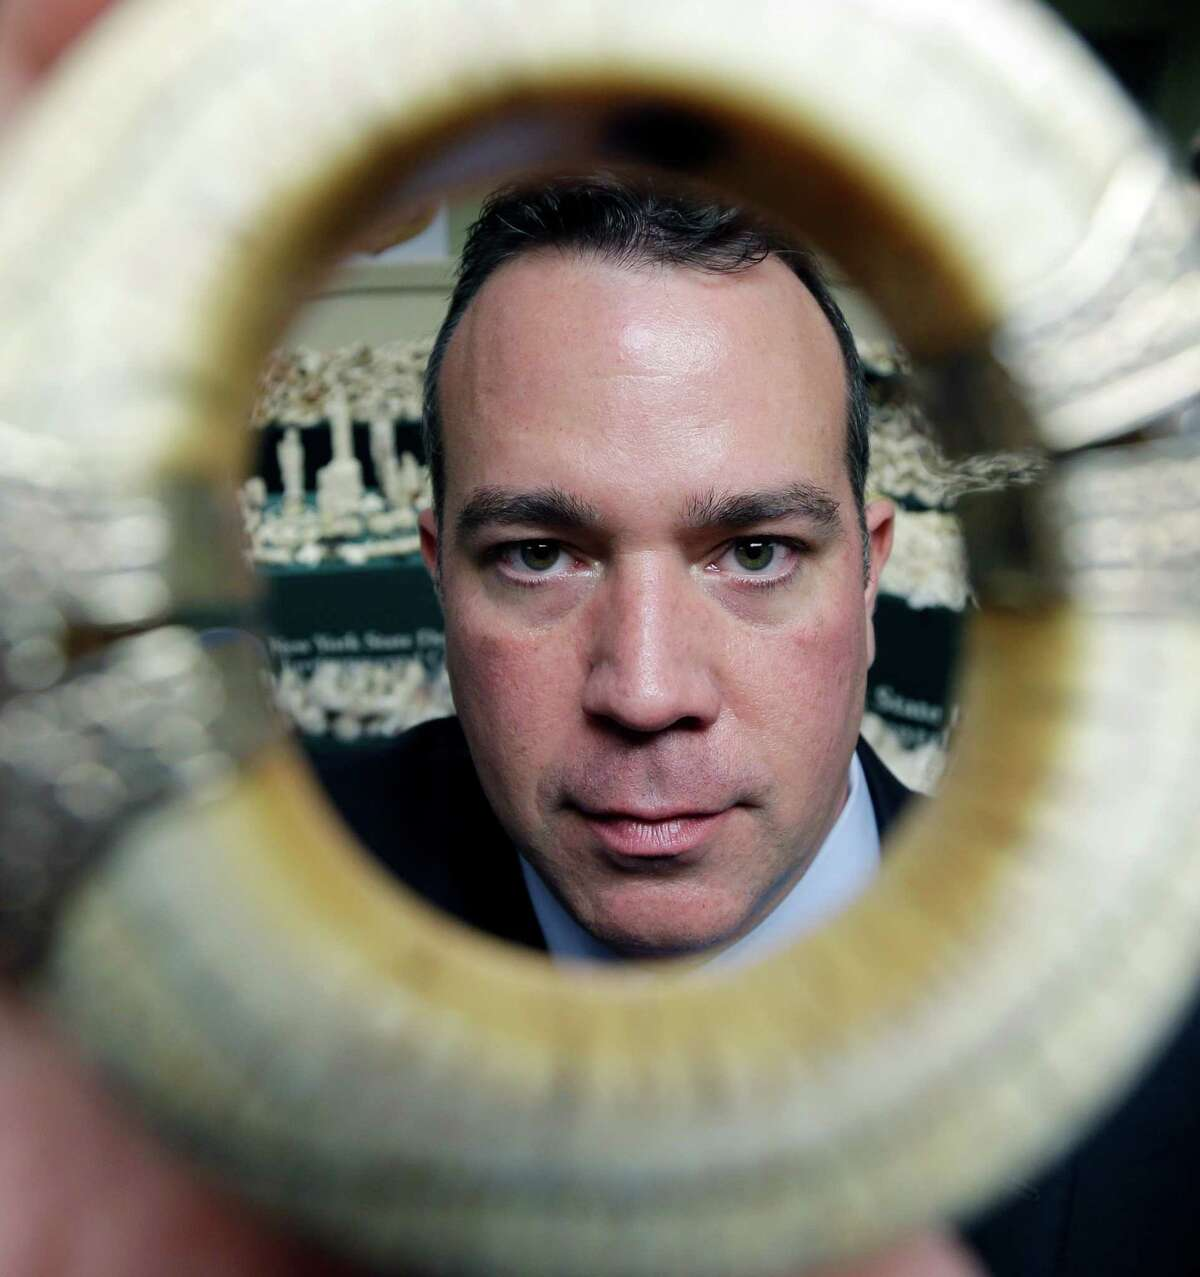 In this Dec. 14, 2012 photo, Lt. John Fitzpatrick, an investigator with the New York State Department of Environmental Conservation, shows off an ivory bracelet in Albany, N.Y. In an effort to shutter the U.S. as a modern elephant graveyard, investigators recently confiscated two tons of ivory that was for sale or passed through New York City, a primary black market for the ongoing African slaughter of the world?'s largest land mammals. (AP Photo/Mike Groll)